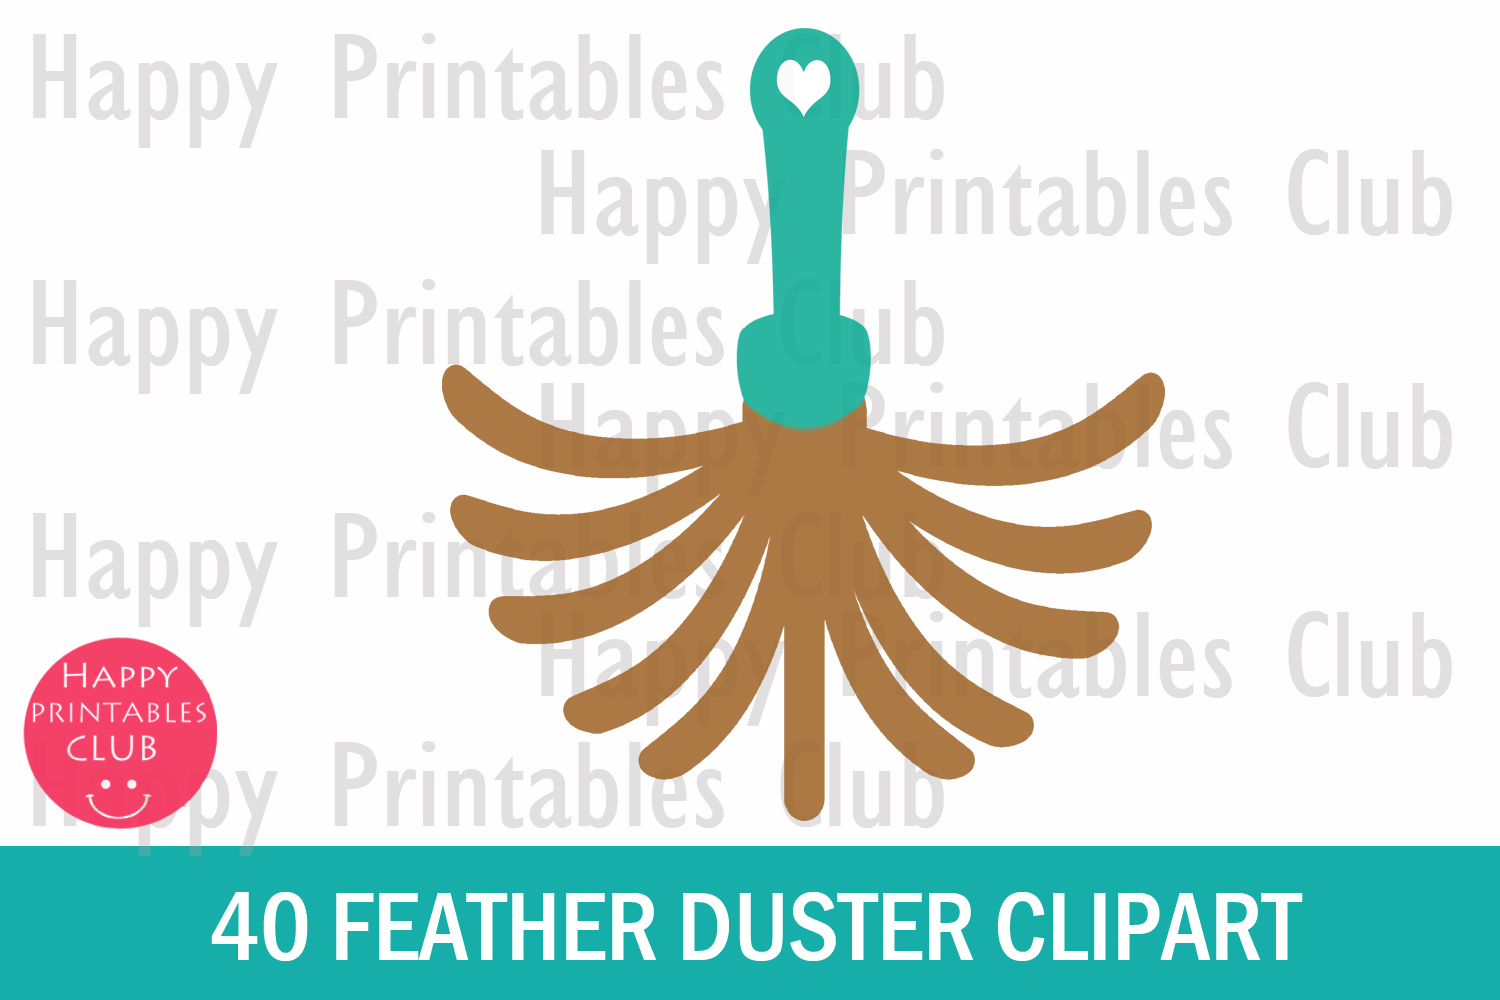 40 Feather Duster Clipart- Duster Clipart- Dust Cleaner PNG example image 2